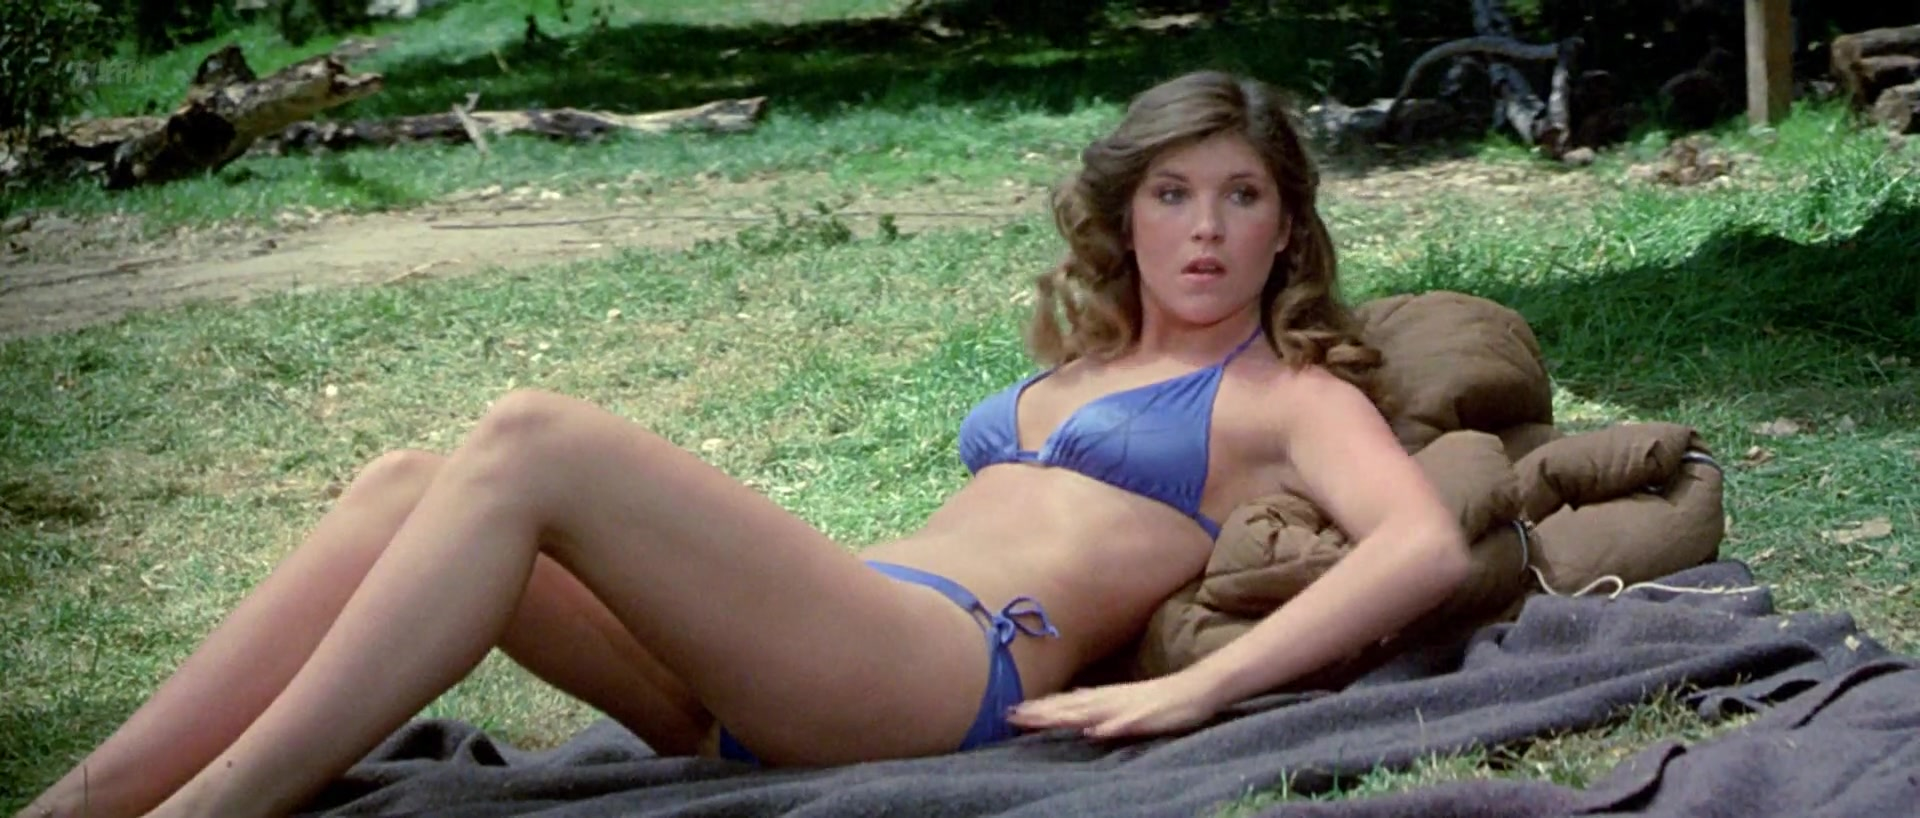 Tracie Savage sexy - Friday the 13th Part III (1982)